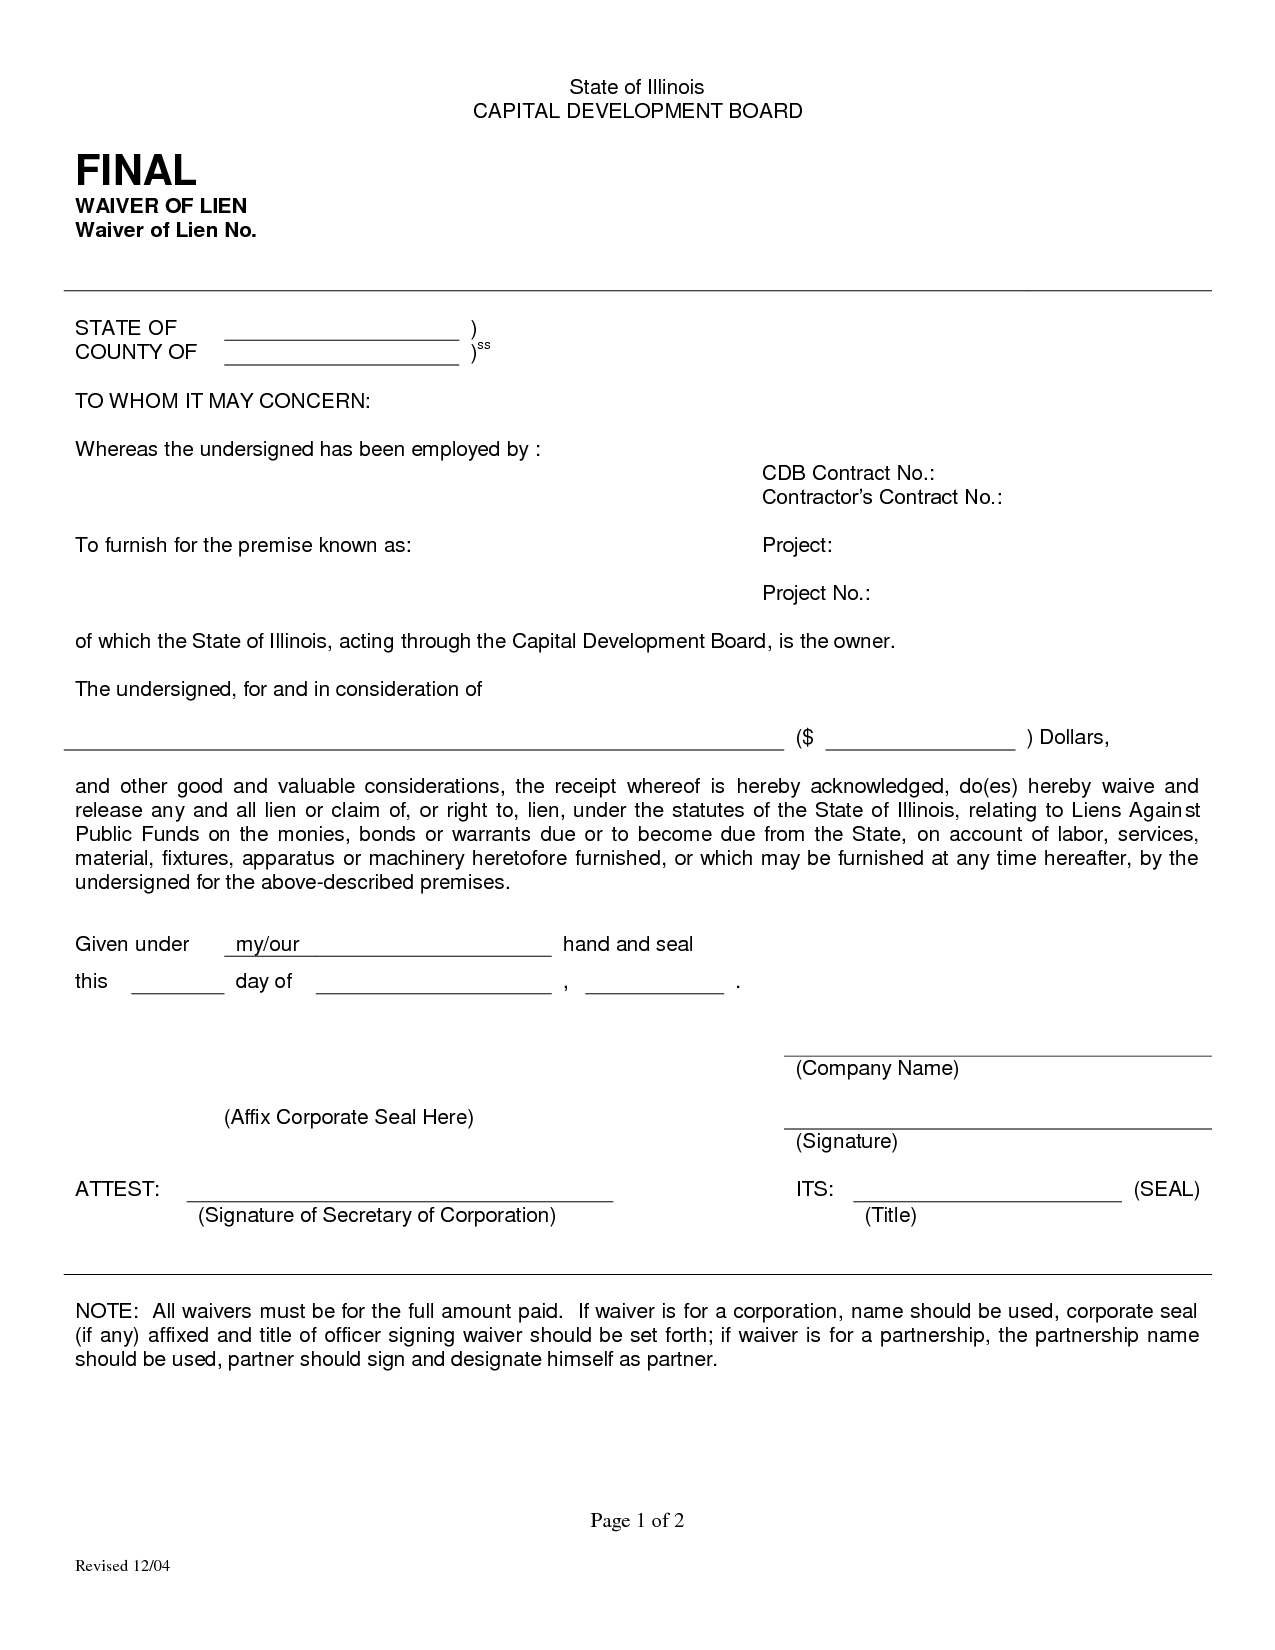 Waiver Of Liability Form Sample   Swifter.co   Sample Waiver  Legal Liability Waiver Form